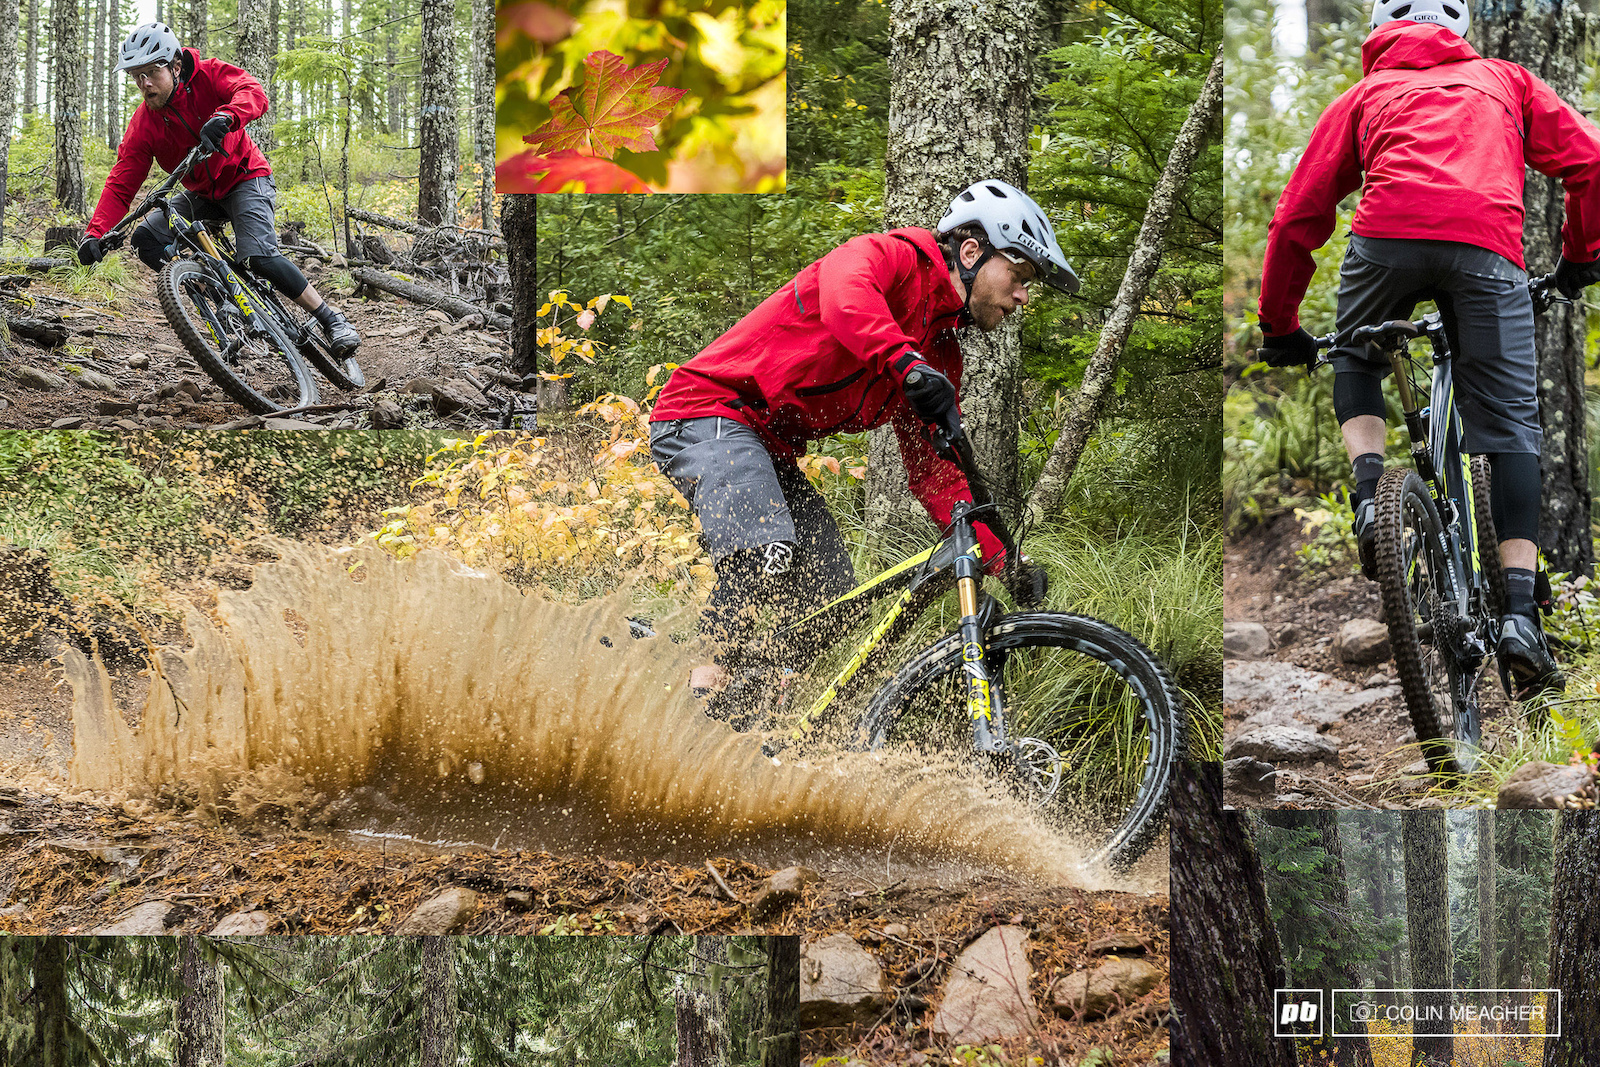 79a11522a 2016 Winter Gear Review - Part One - Pinkbike